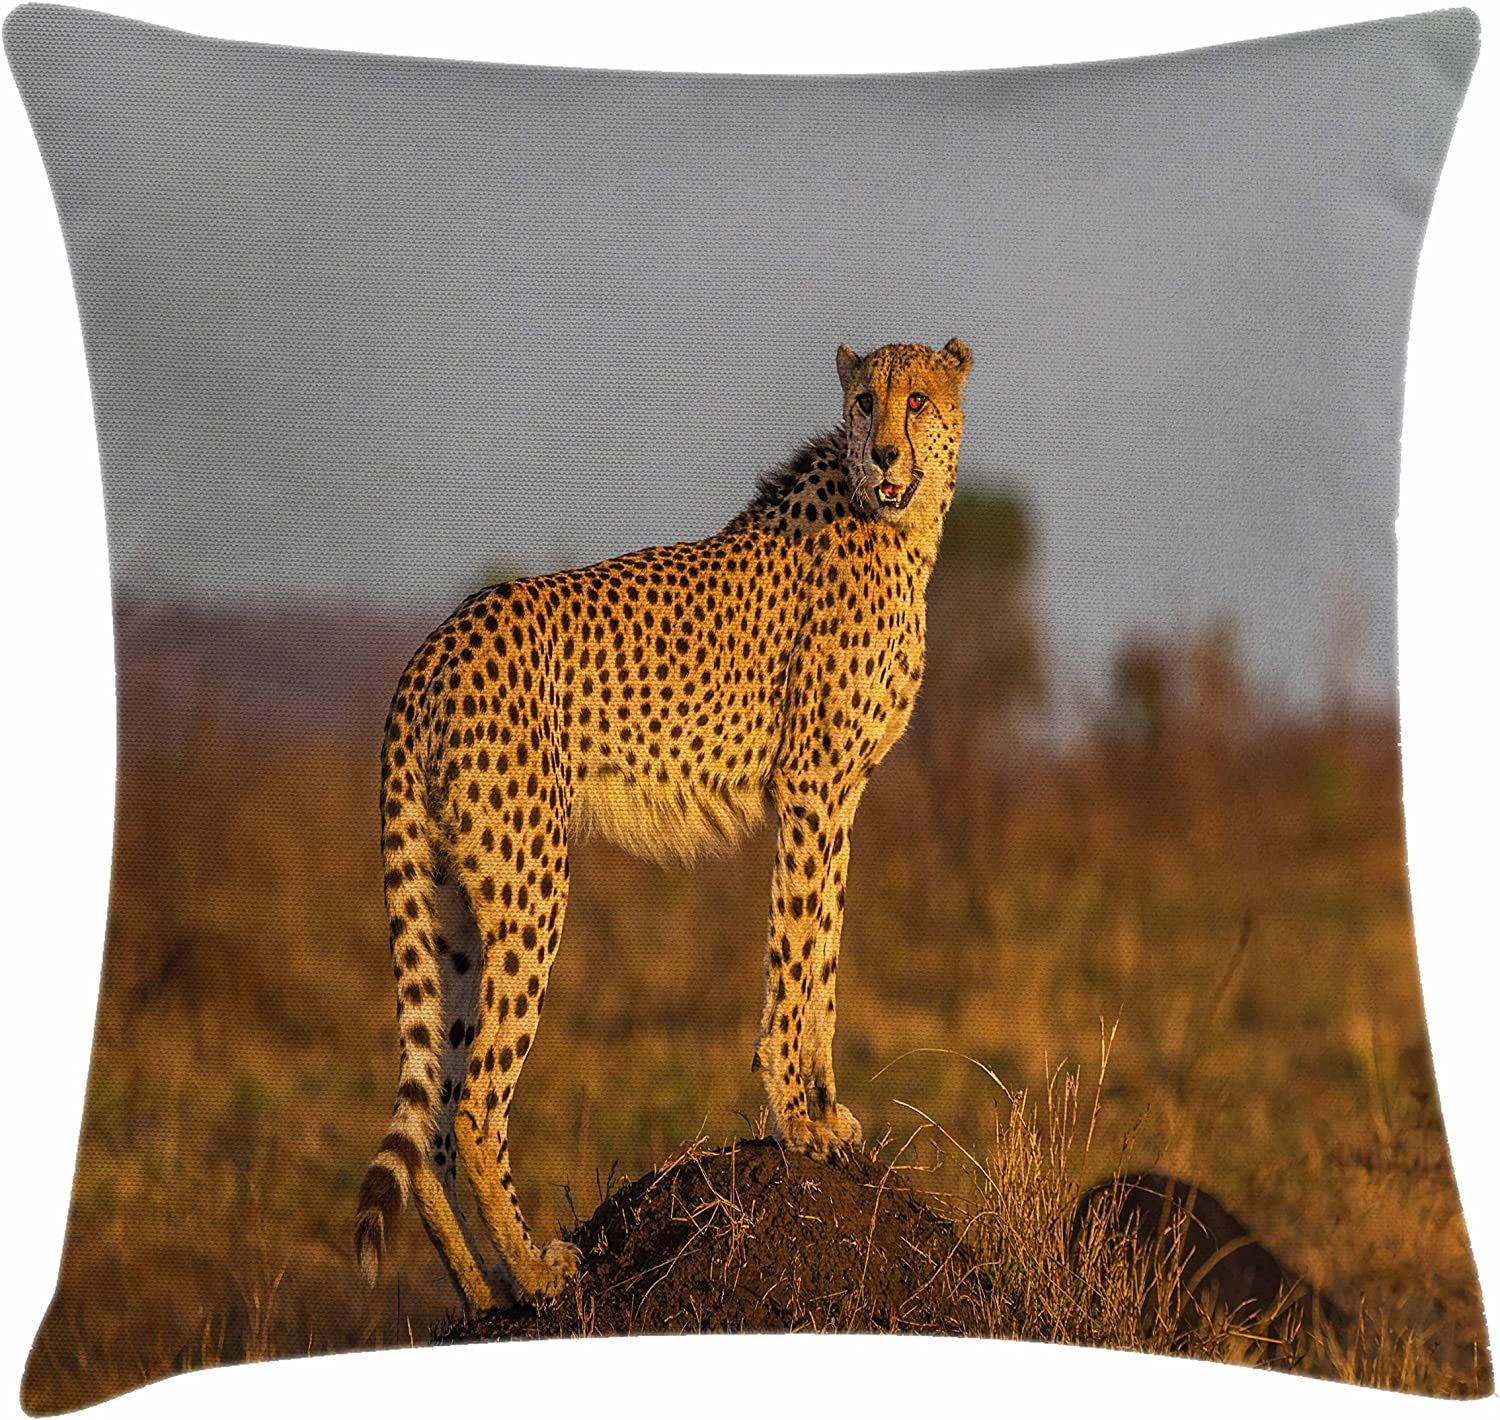 Ambesonne Safari Throw Pillow Cushion Cover, Wild Animal Cheetah Standing on Termite Mound Savannah Nature View, Decorative Square Accent Pillow Case, 16